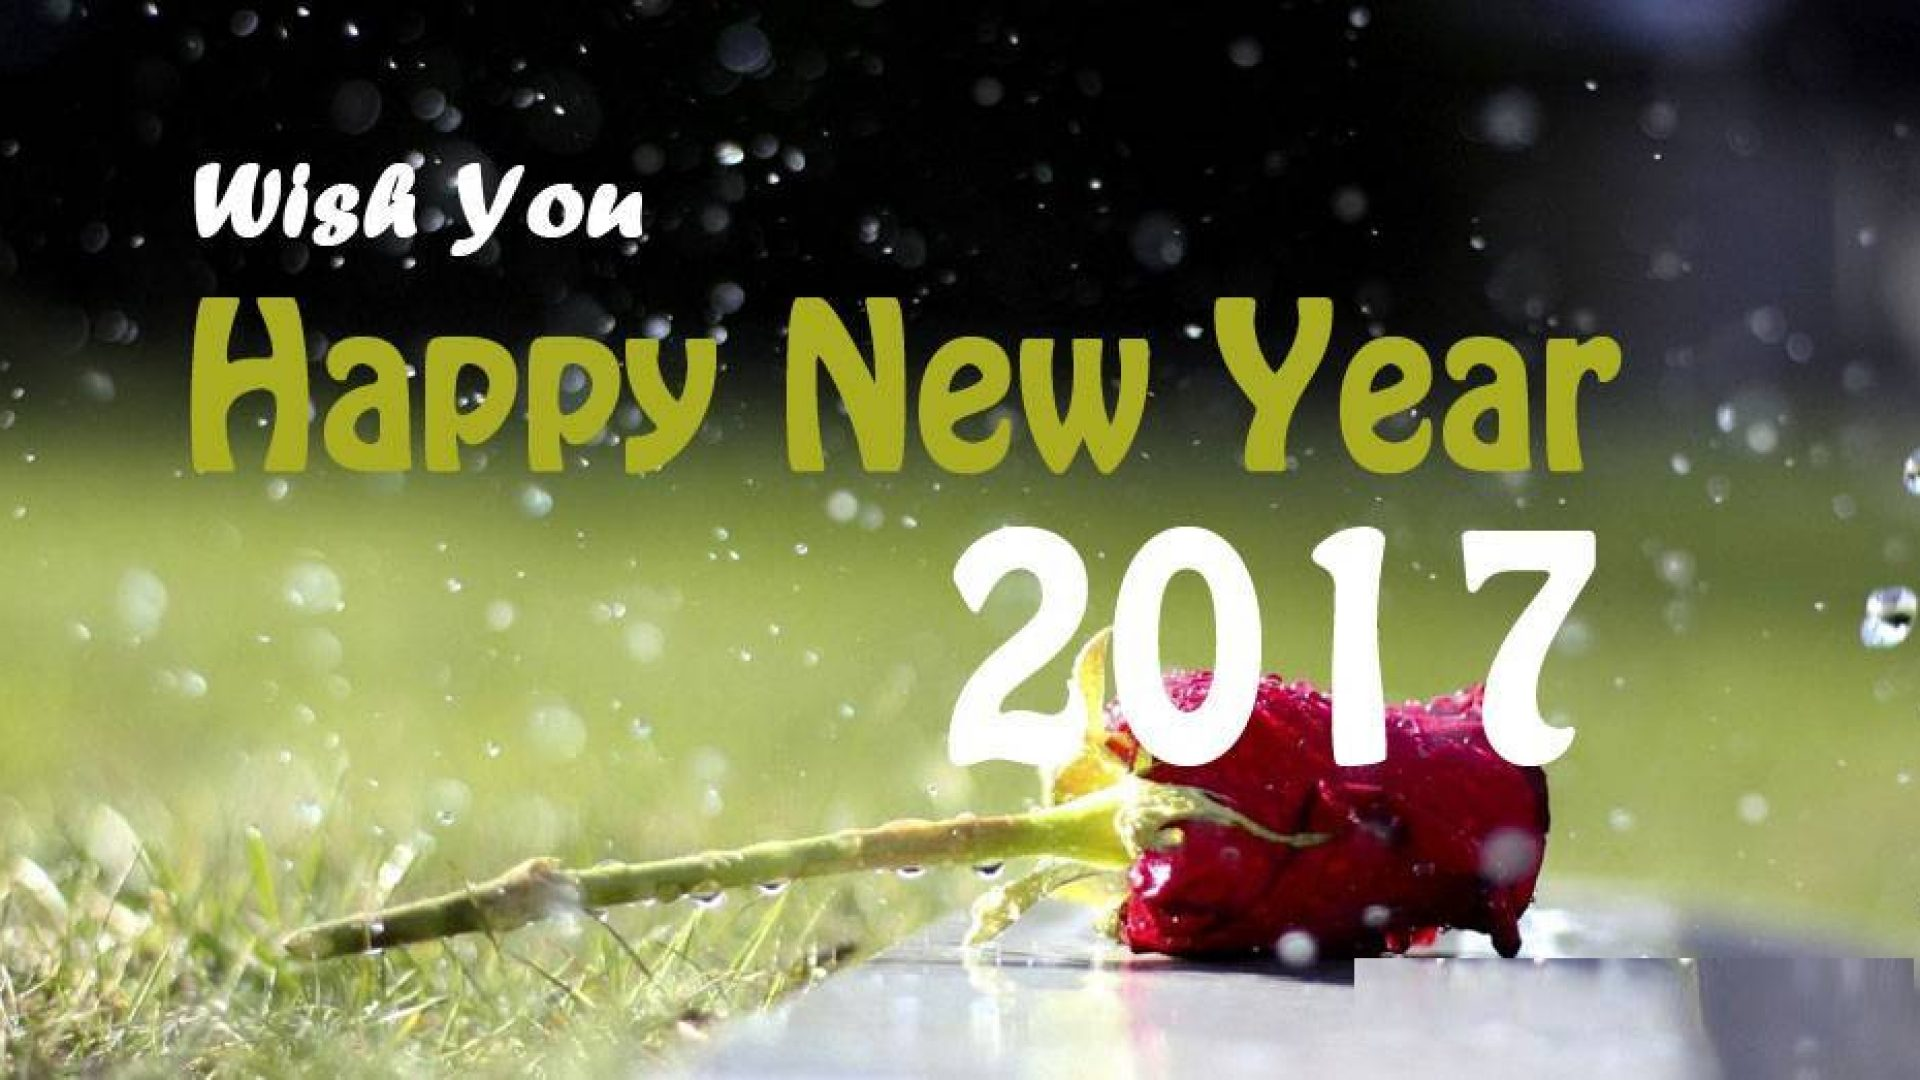 new year wishes wallpaper download 1920x1080